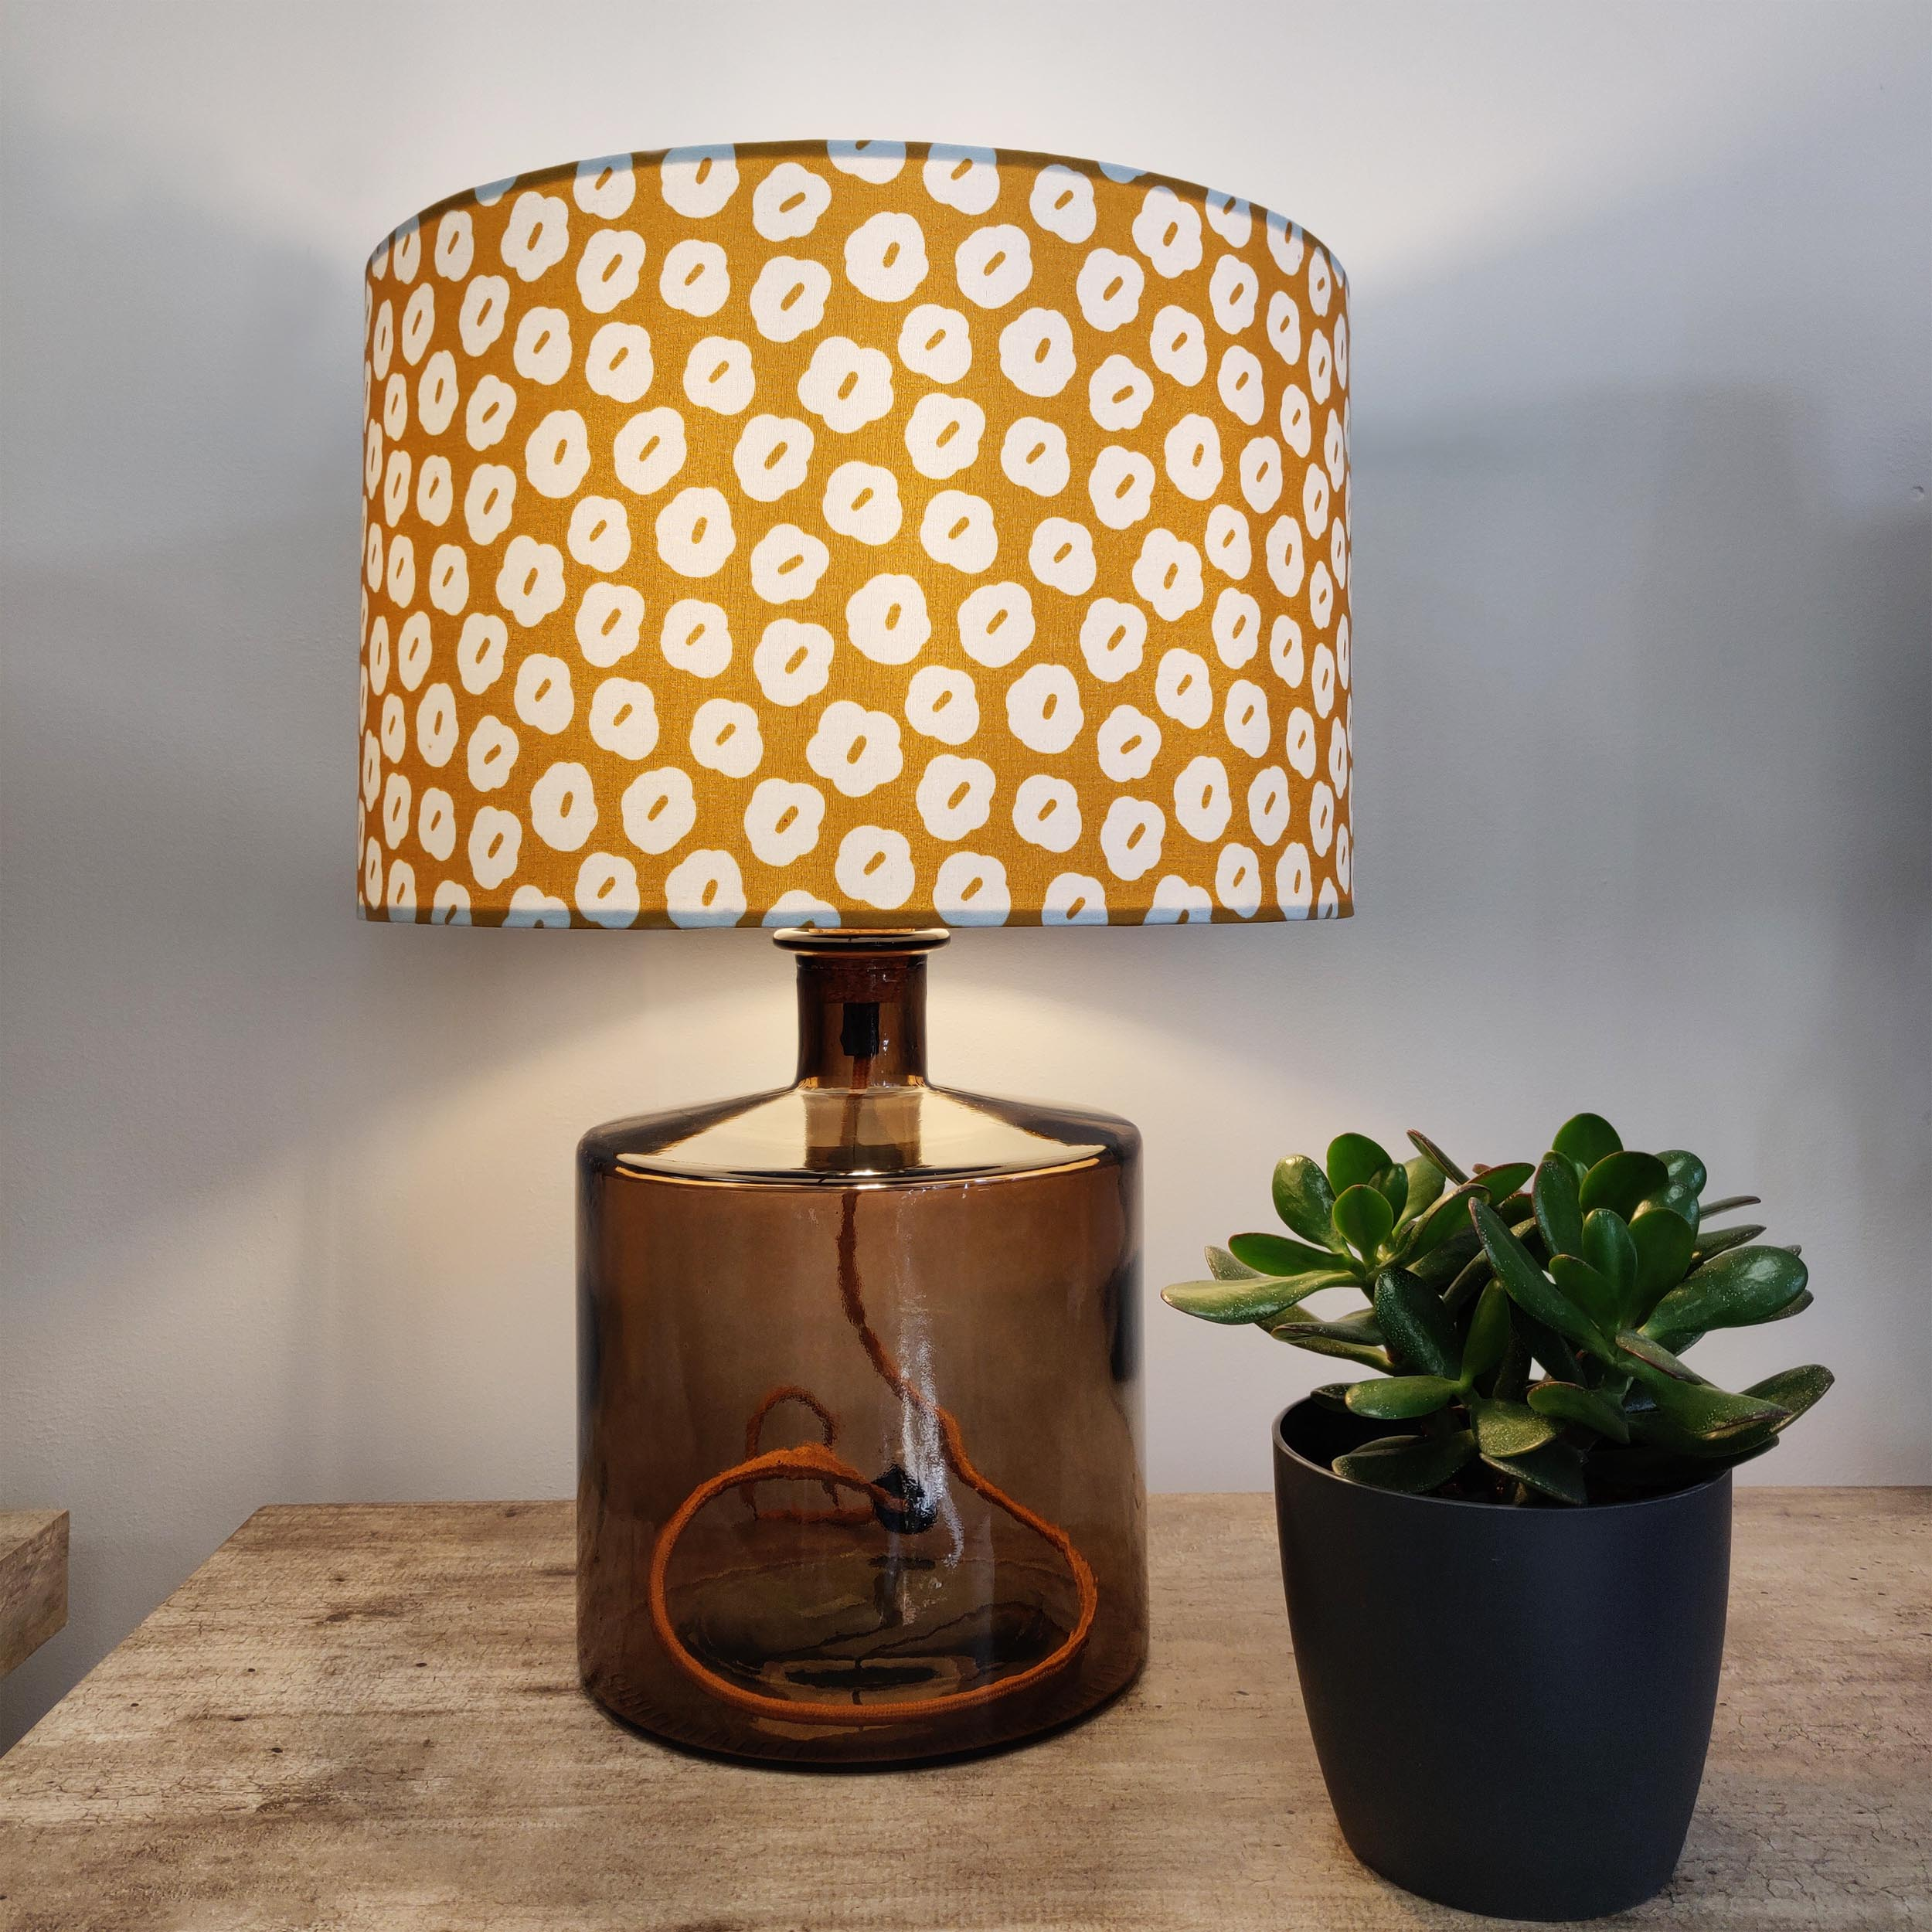 Mustard Cotton Lampshade with Flowers